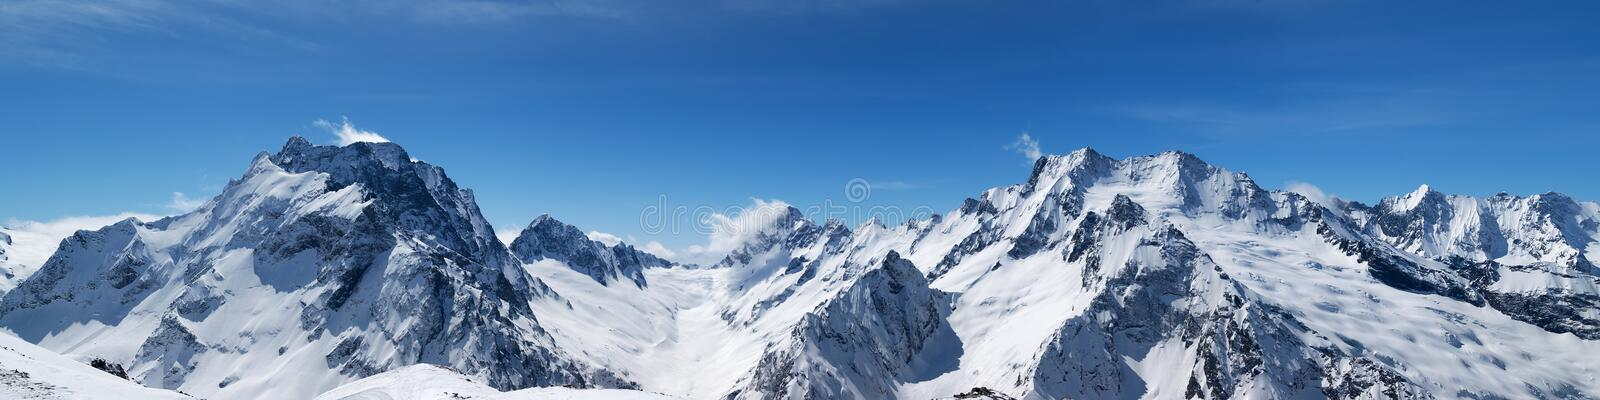 Panoramic view of snow-capped mountain peaks royalty free stock image